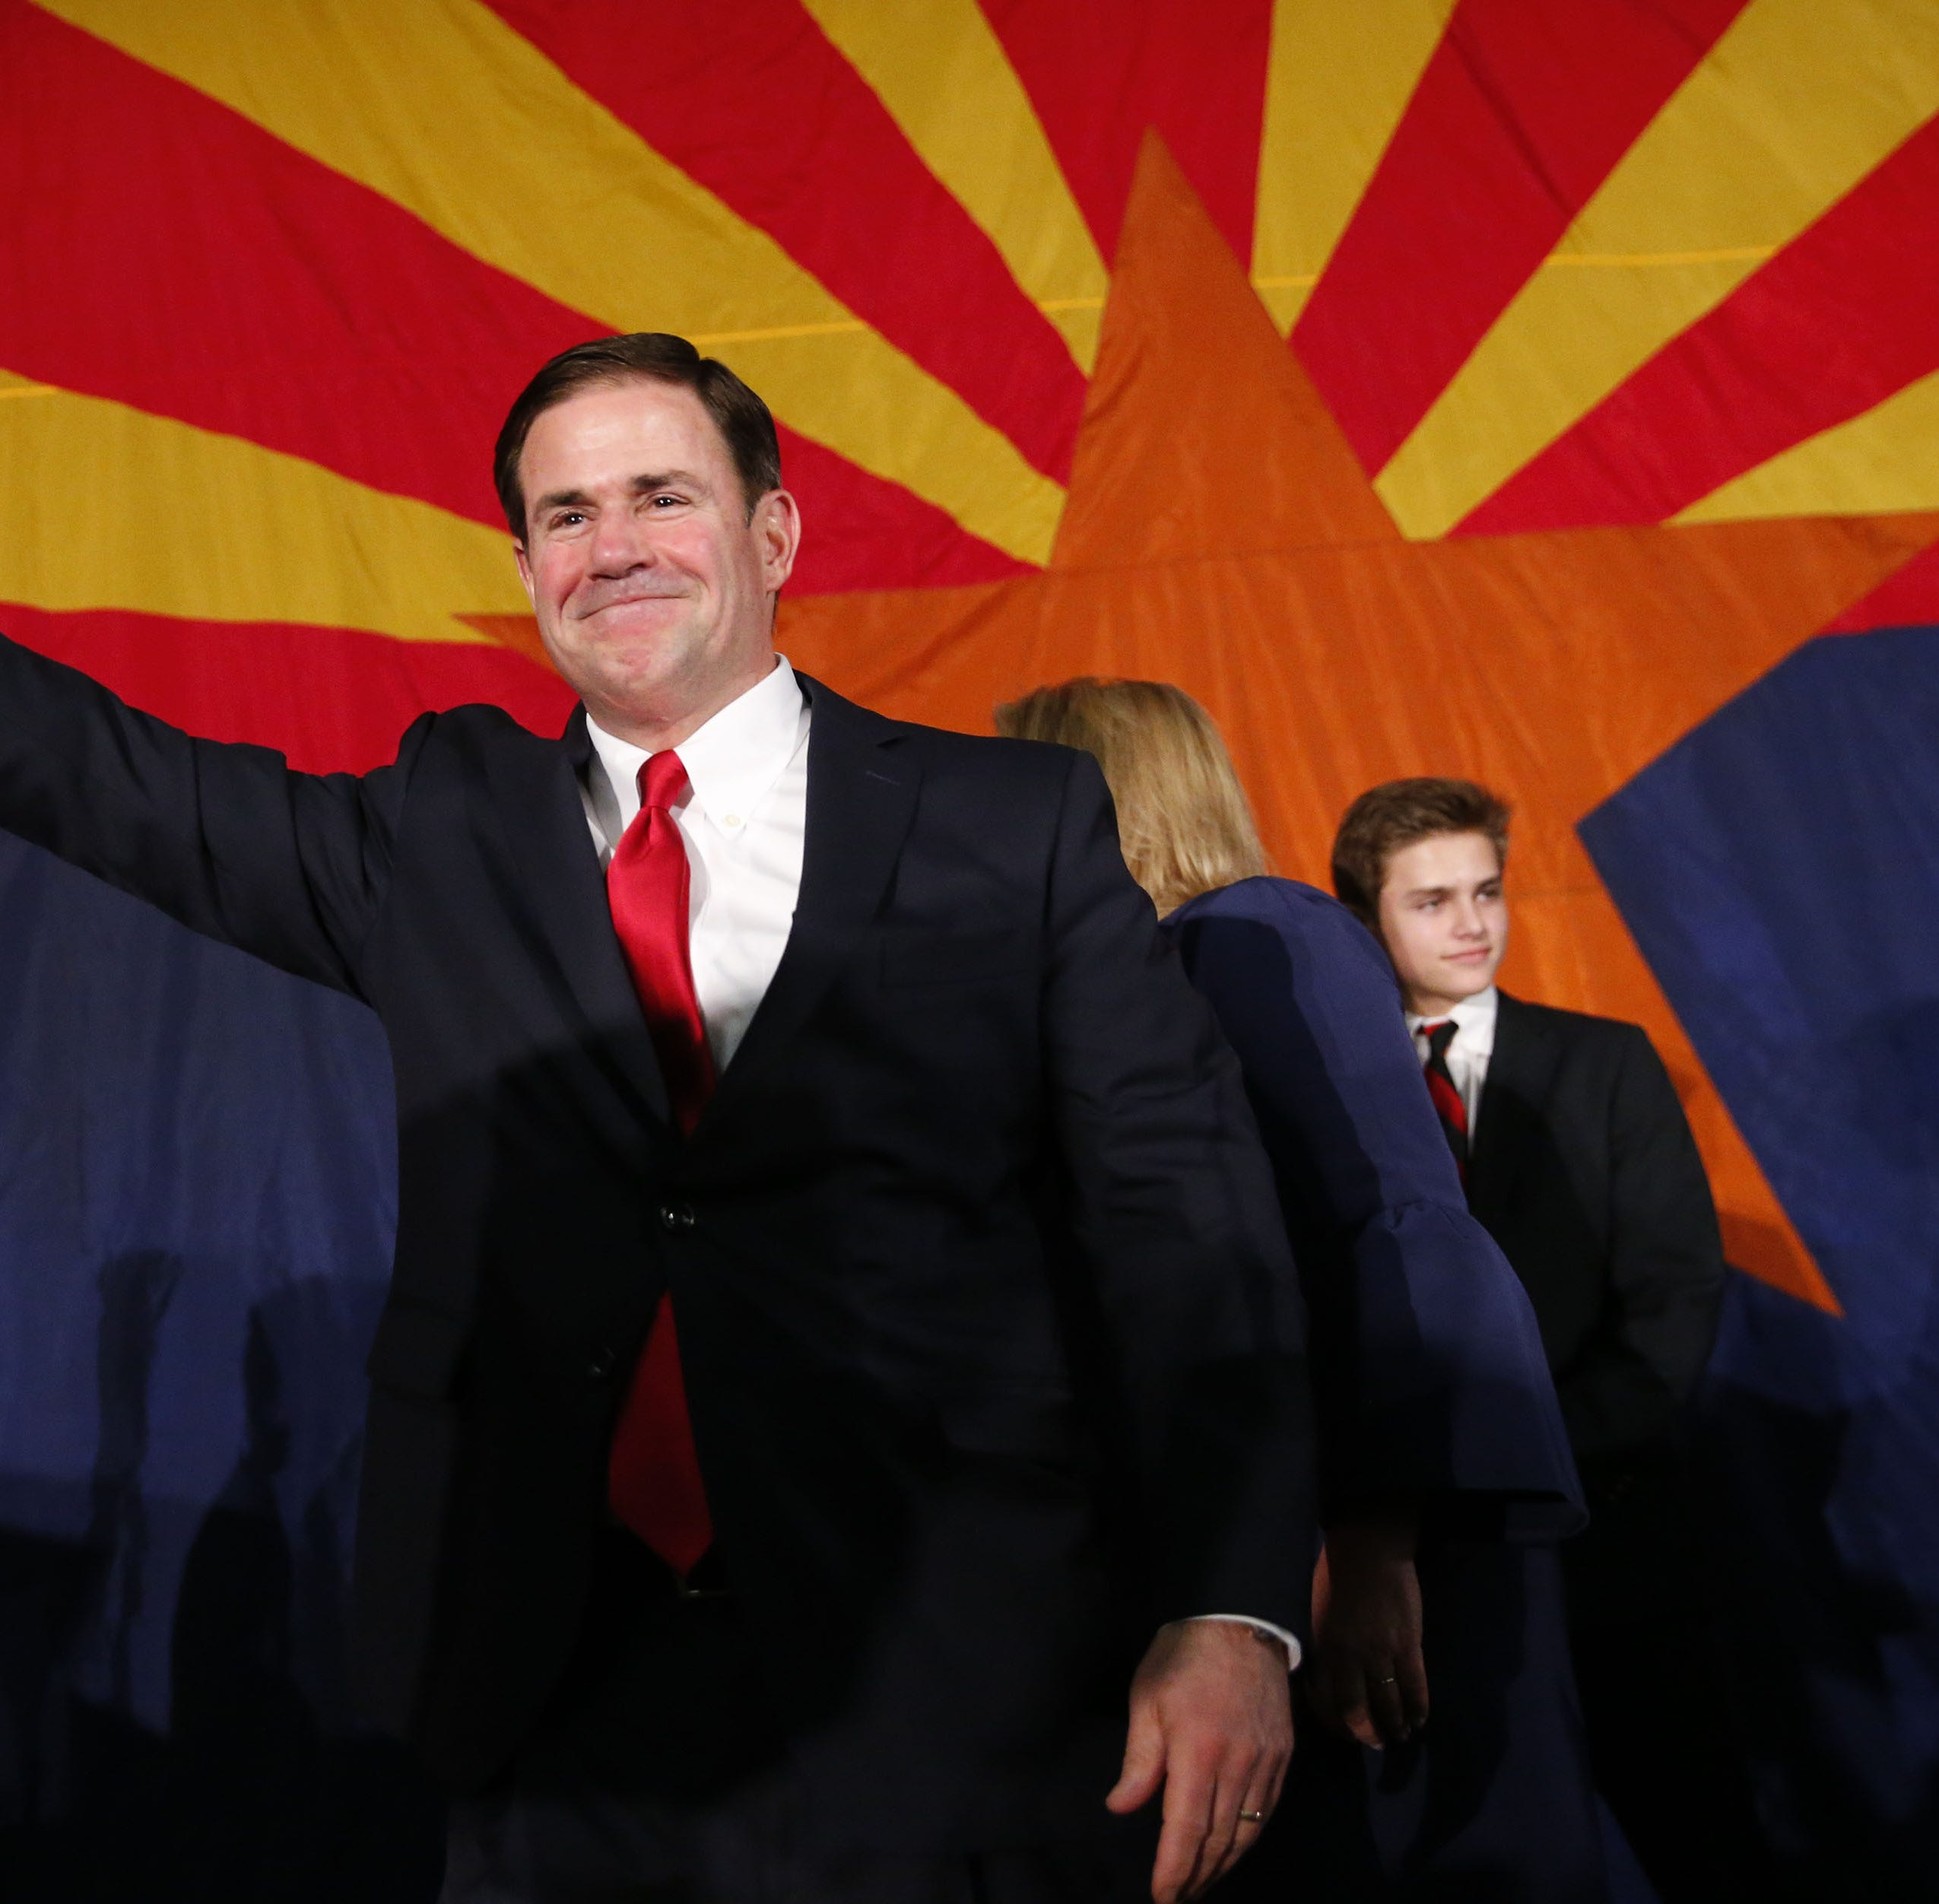 Gov. Doug Ducey's billionaire sugar daddy revealed